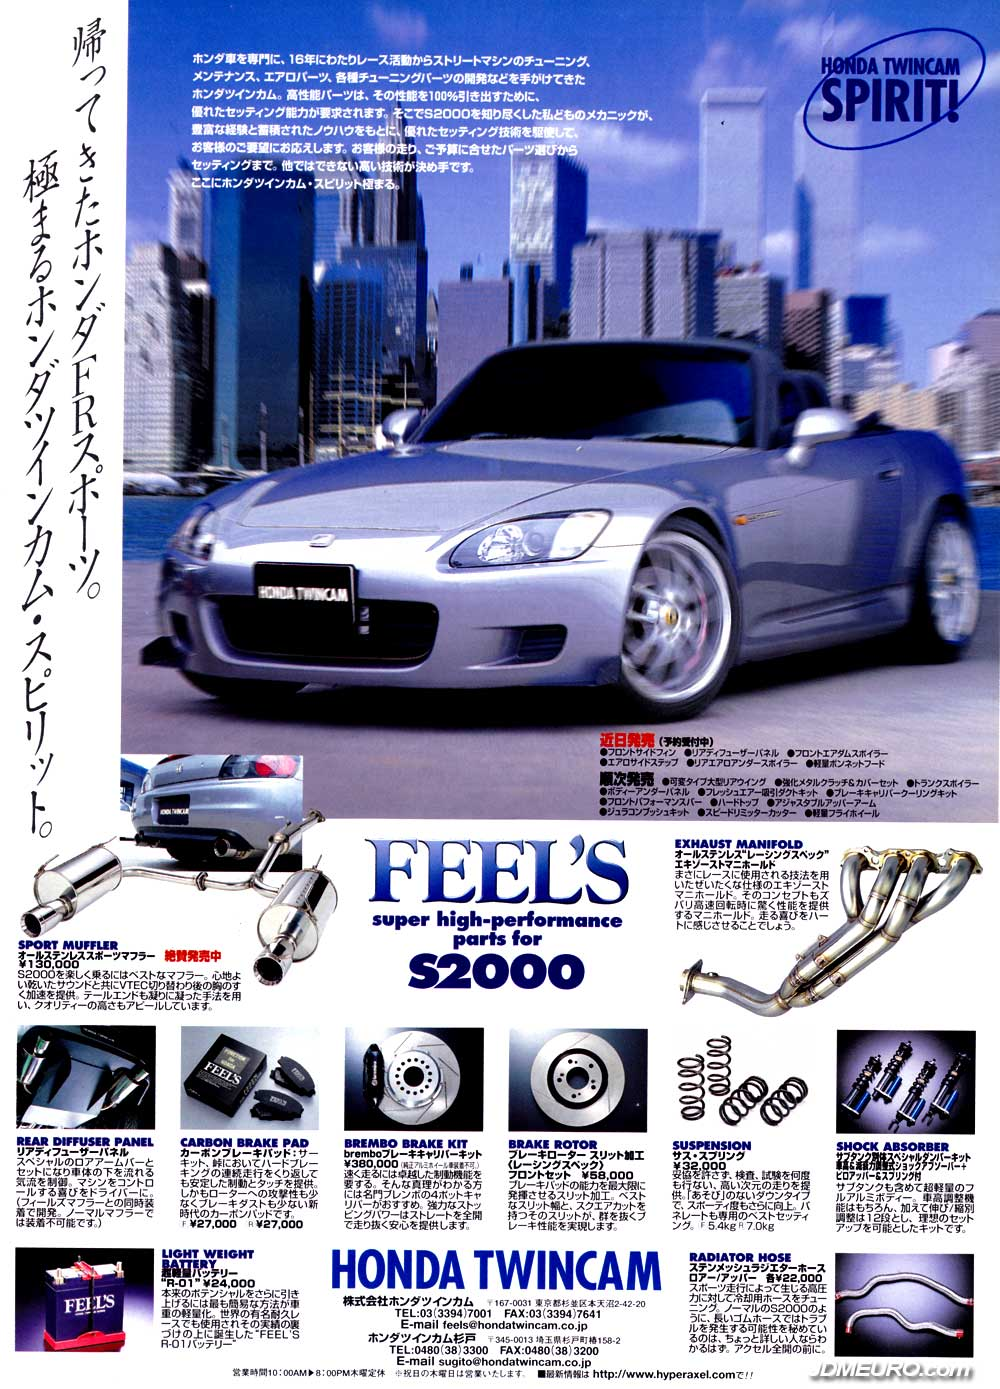 Feel's is a Tuning Firm in Japan specializing in Honda Automobiles and is also known by Honda Twin Cam. This ad shows tuning parts for Honda S2000 Ap1. Shown are Honda S2000 part: Feel's sport Muffler, Feel's Exhaust Manifold, Feel's Rear Diffuser Panel, Feel's Carbon Brake Pad, Feel's Brembo Brake Kit, Feel's Brake Rotor, Feel's Suspension, Feel's Shock Absorber, Feel's Light Weight Battery, Feel's Radiator Hose. It appears the Honda S2000 pictured have a set of Work Weister s2r mounted.